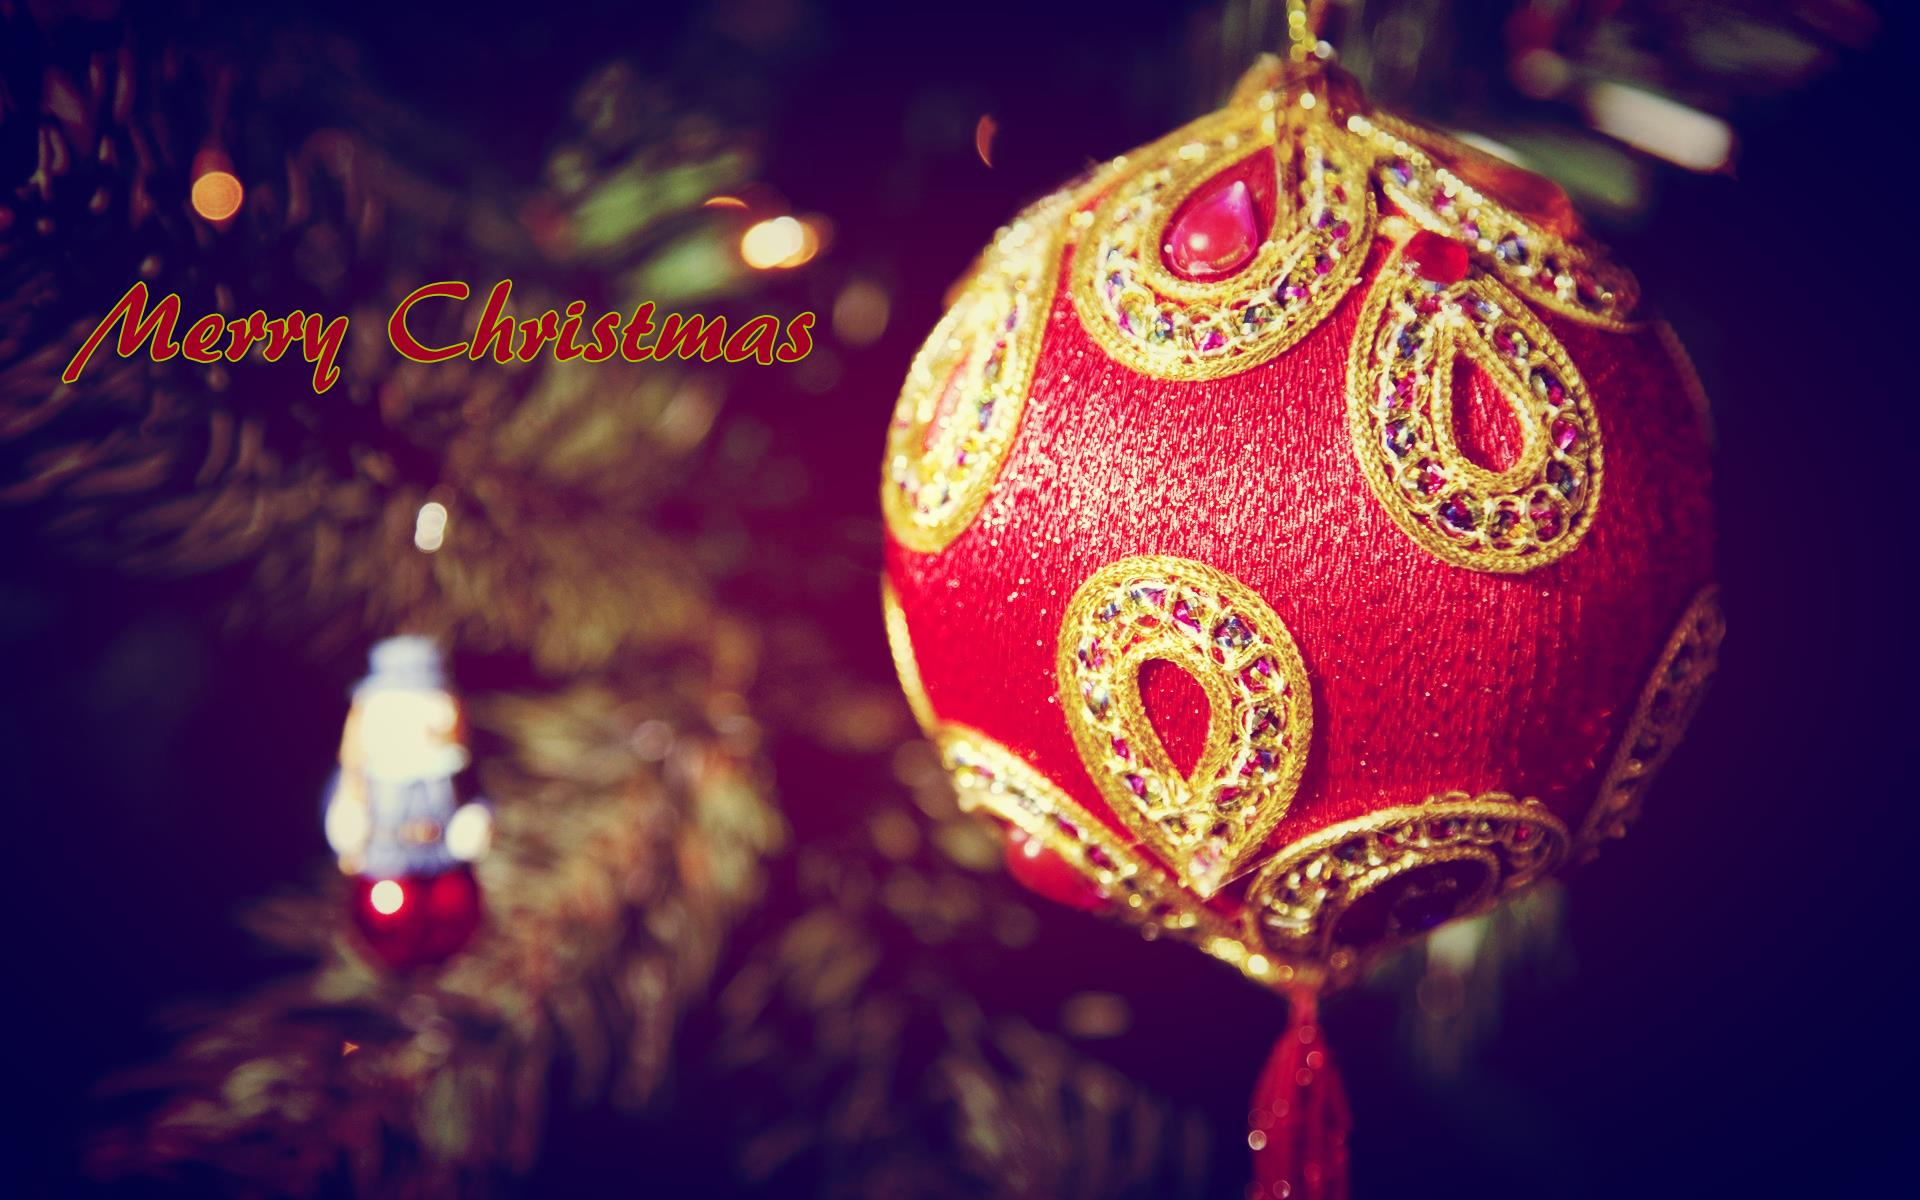 Marry Christmas HD wallpaper for download in laptop and desktop